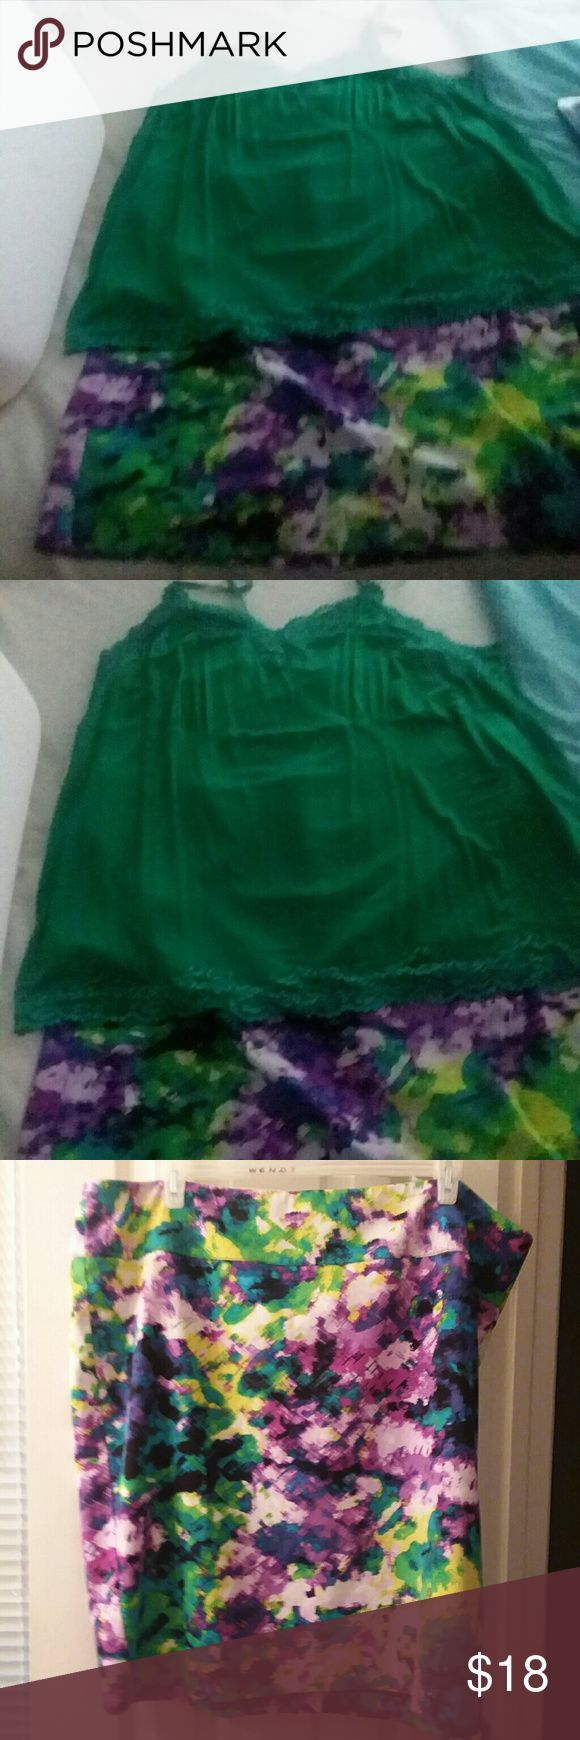 Outfit 24W Multi Colored skirt & 26W Green cami NWOT, outfit Lane Bryant plus size 24W Multi Colored Print Pencil skirt and lane Bryant 26/28W Green with lace trim cami, skirt is polyester/spandex, cami is rayon/spandex Lane Bryant Other